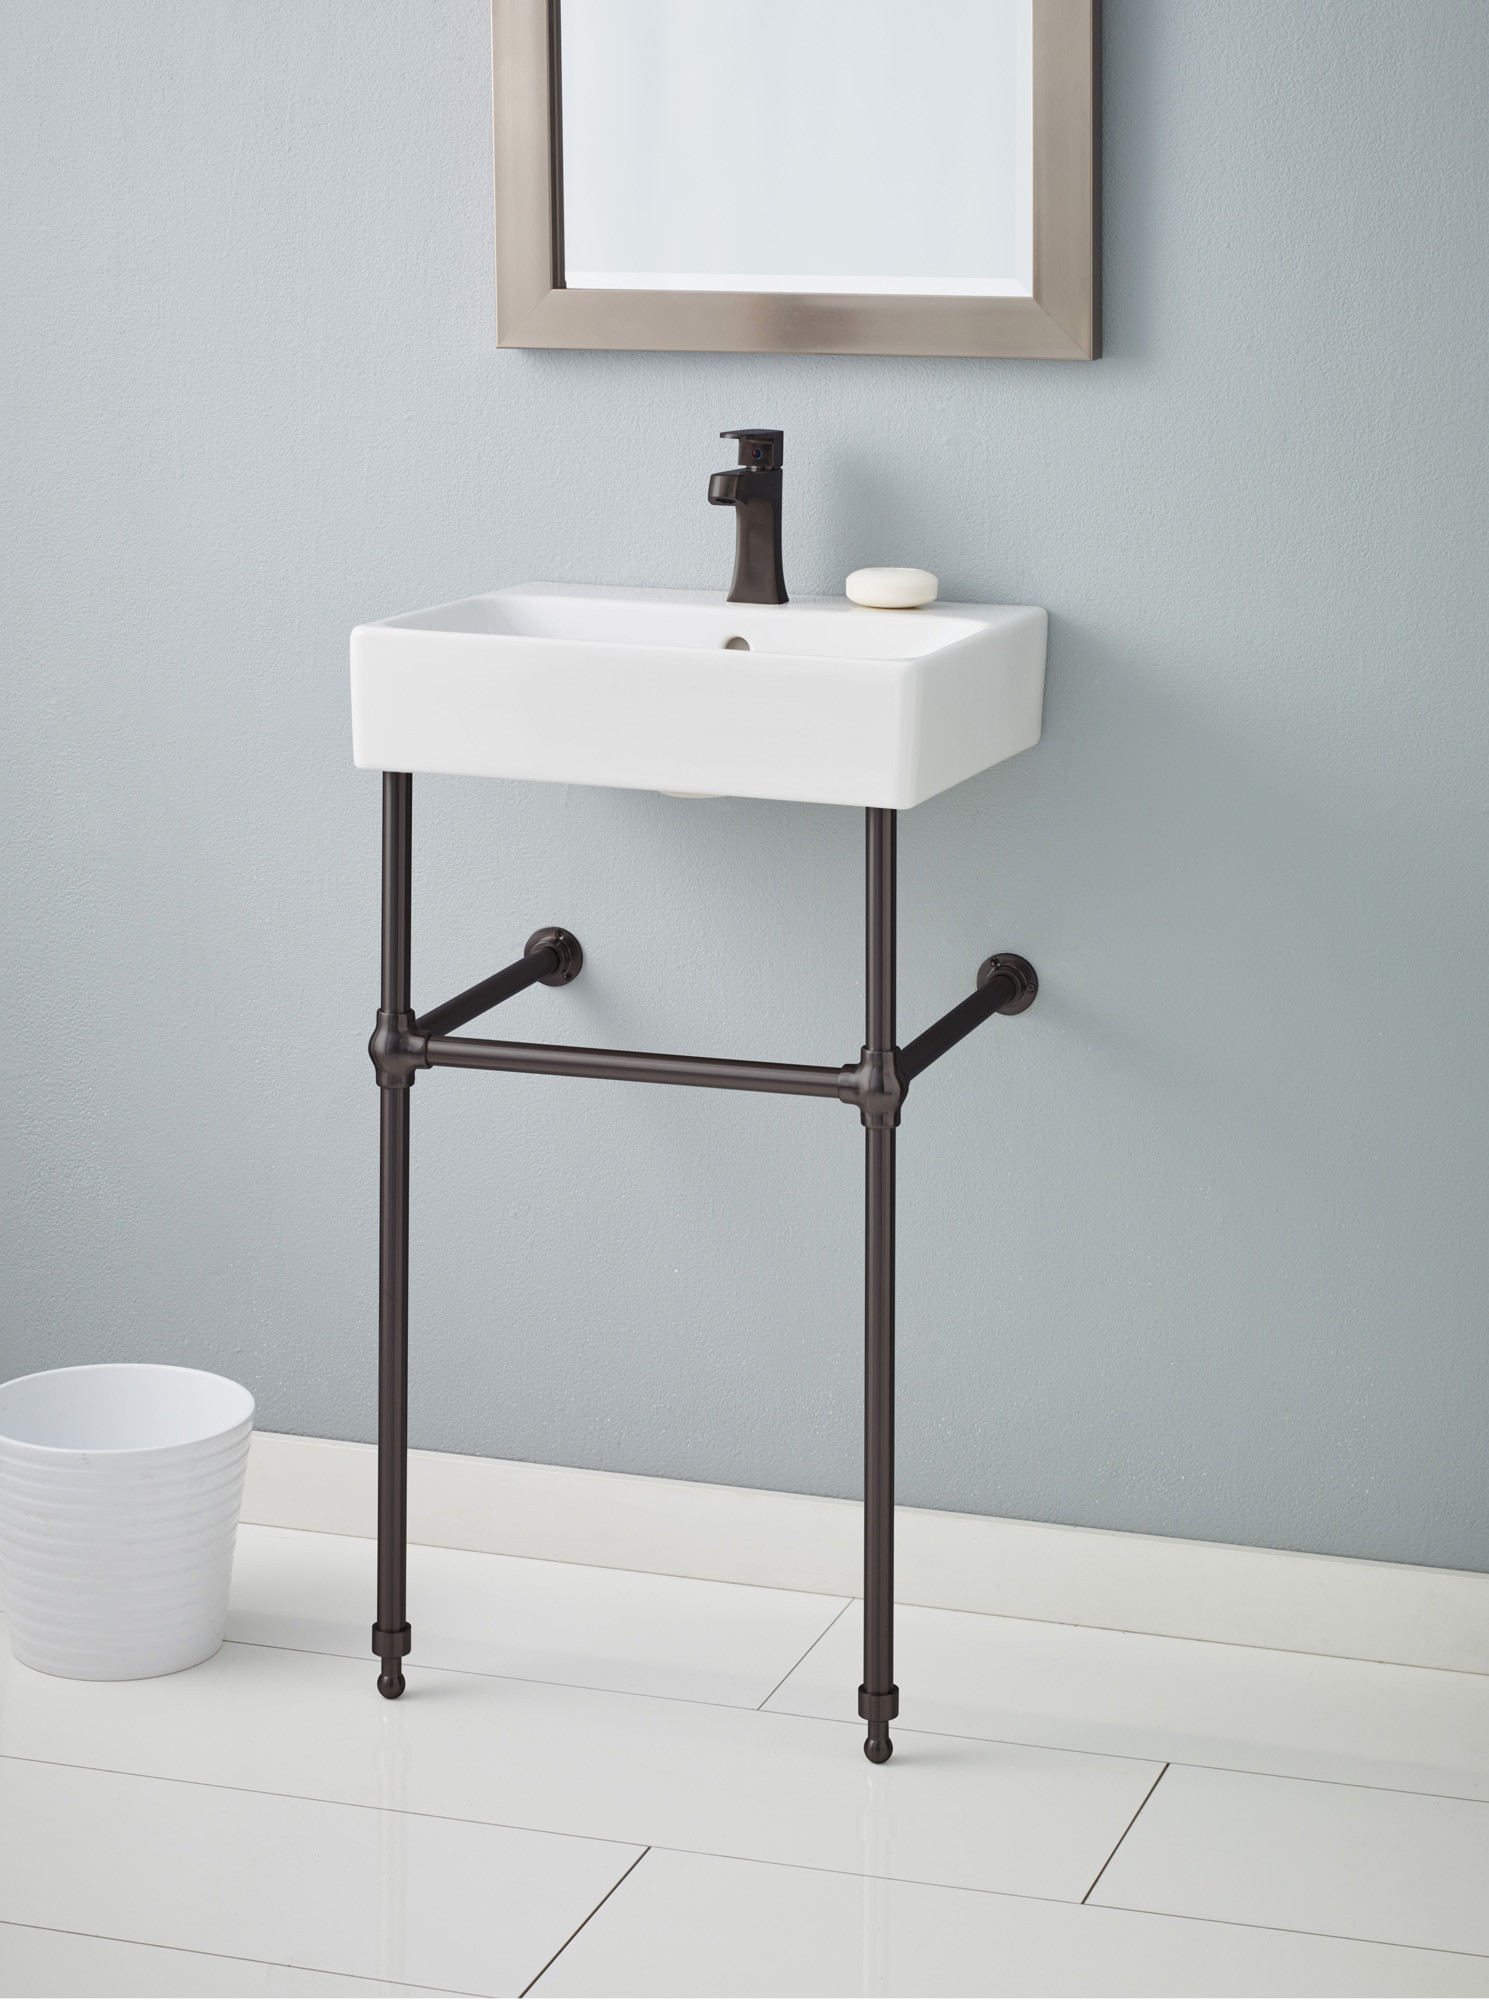 Cheviot 1232-WH-1-575-AB NUO Single Bowl Lavatory Sink with Antique Bronze Console